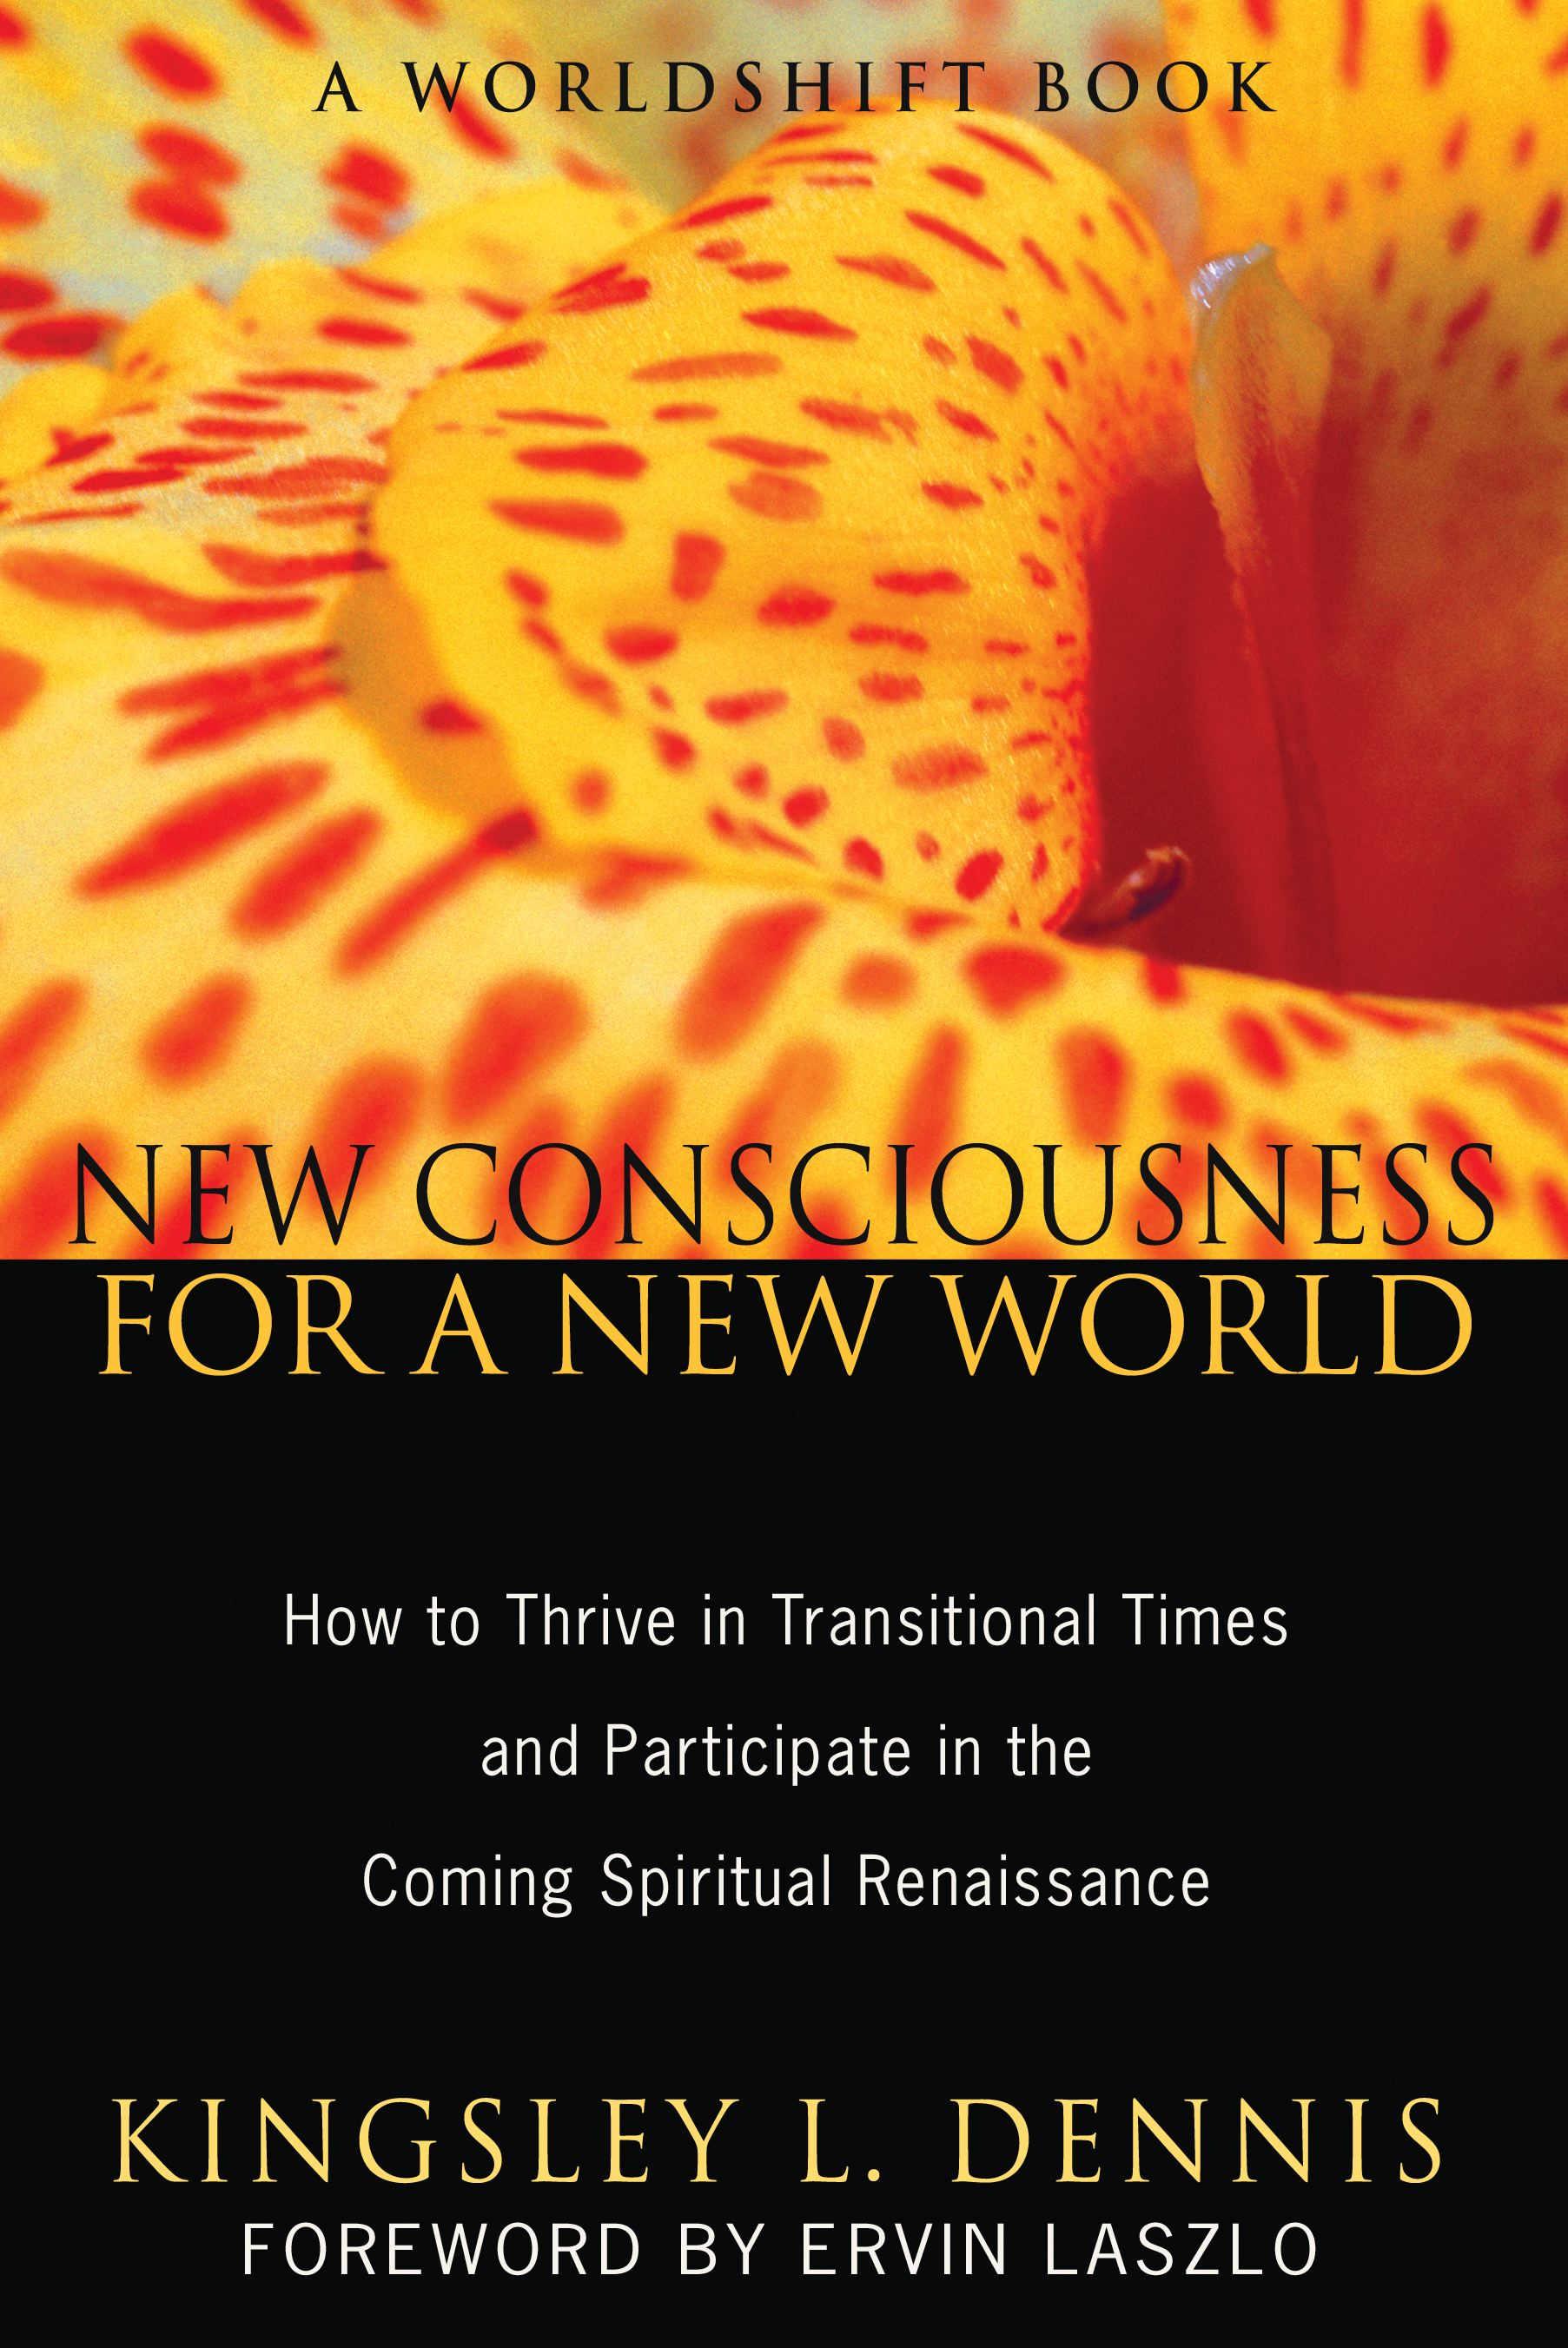 New Consciousness for a New World | Book by Kingsley L